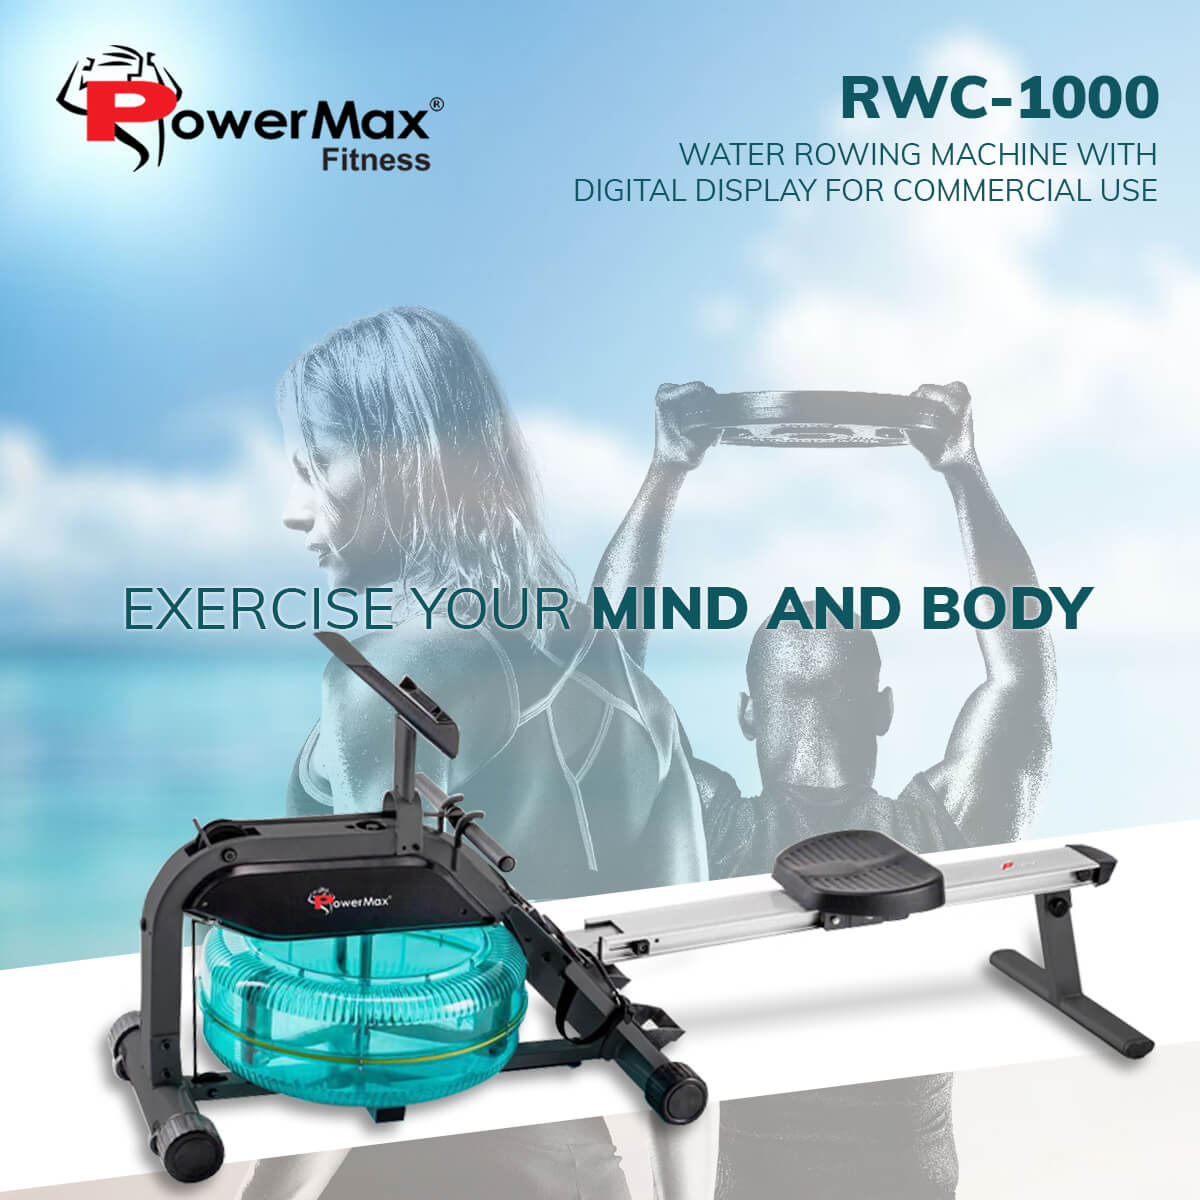 PowerMax Fitness RWC-1000 Water Rowing Machine with Digital Display for Commercial use